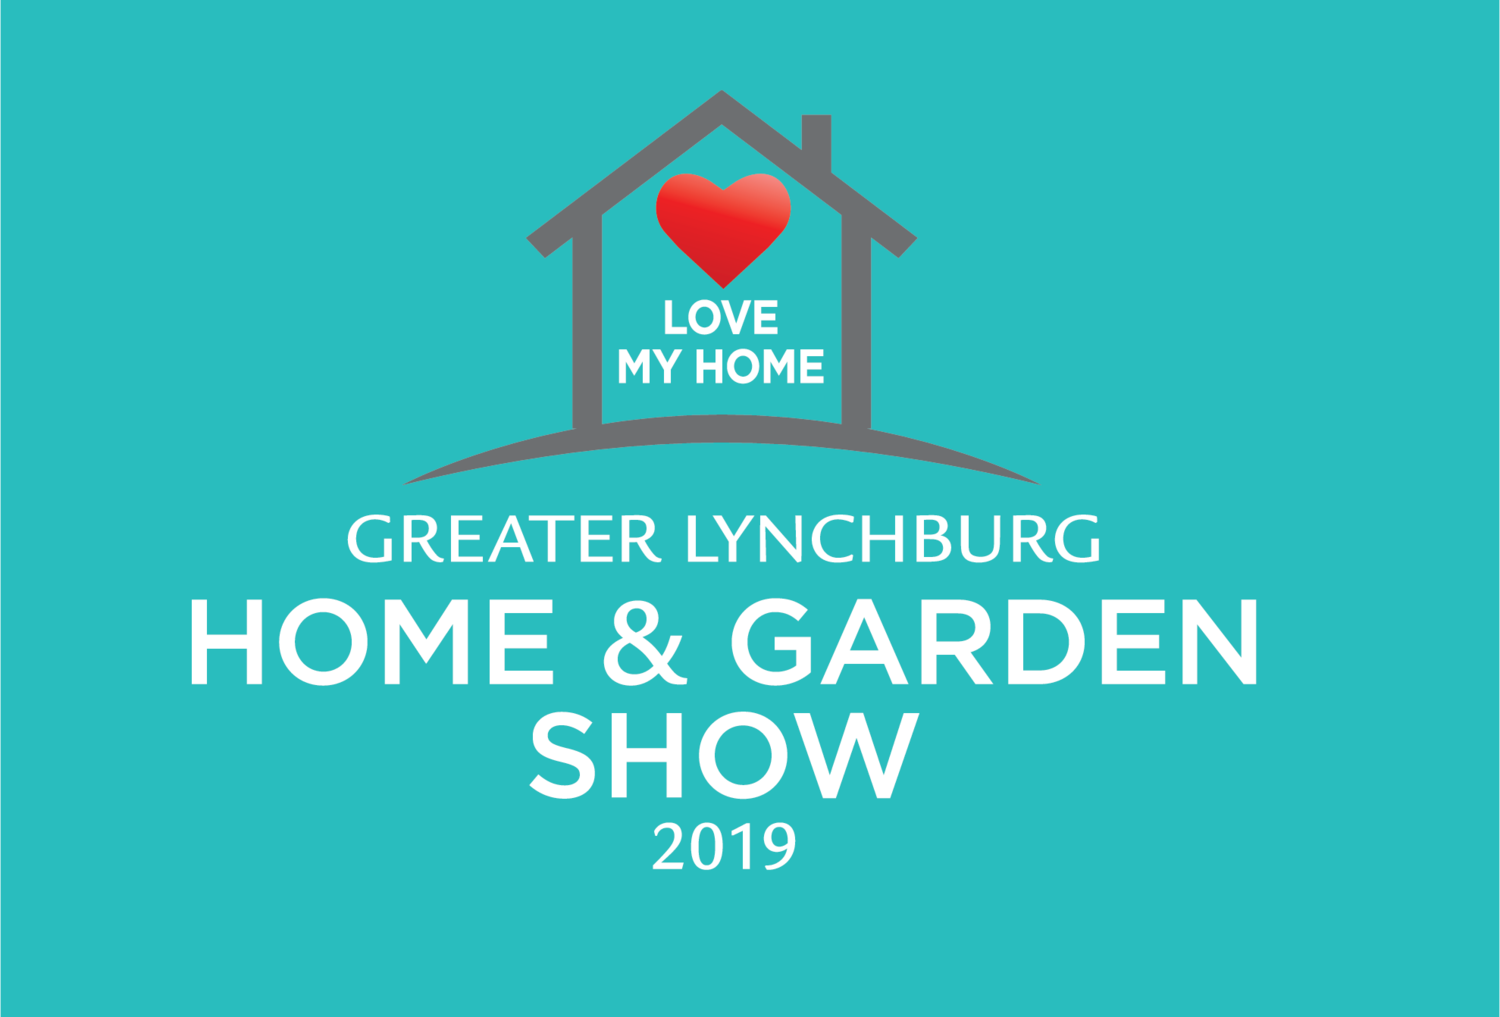 Greater Lynchburg Home & Garden Show